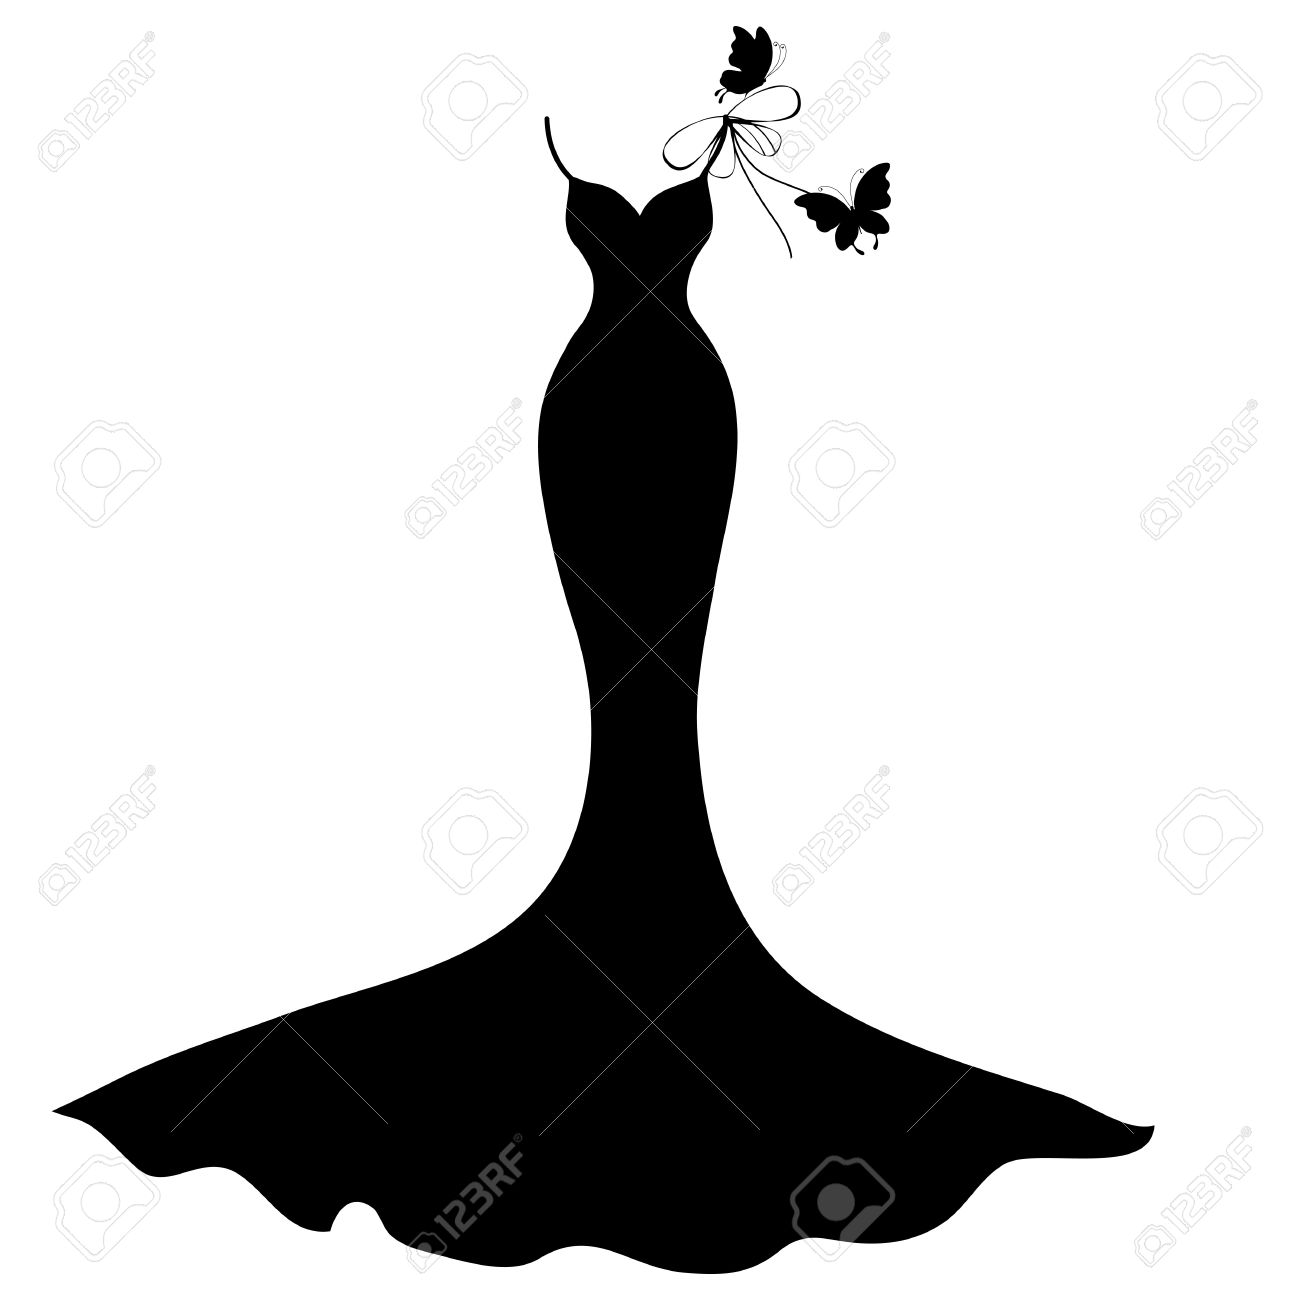 Prom Dress Clipart   Free download best Prom Dress Clipart on ...